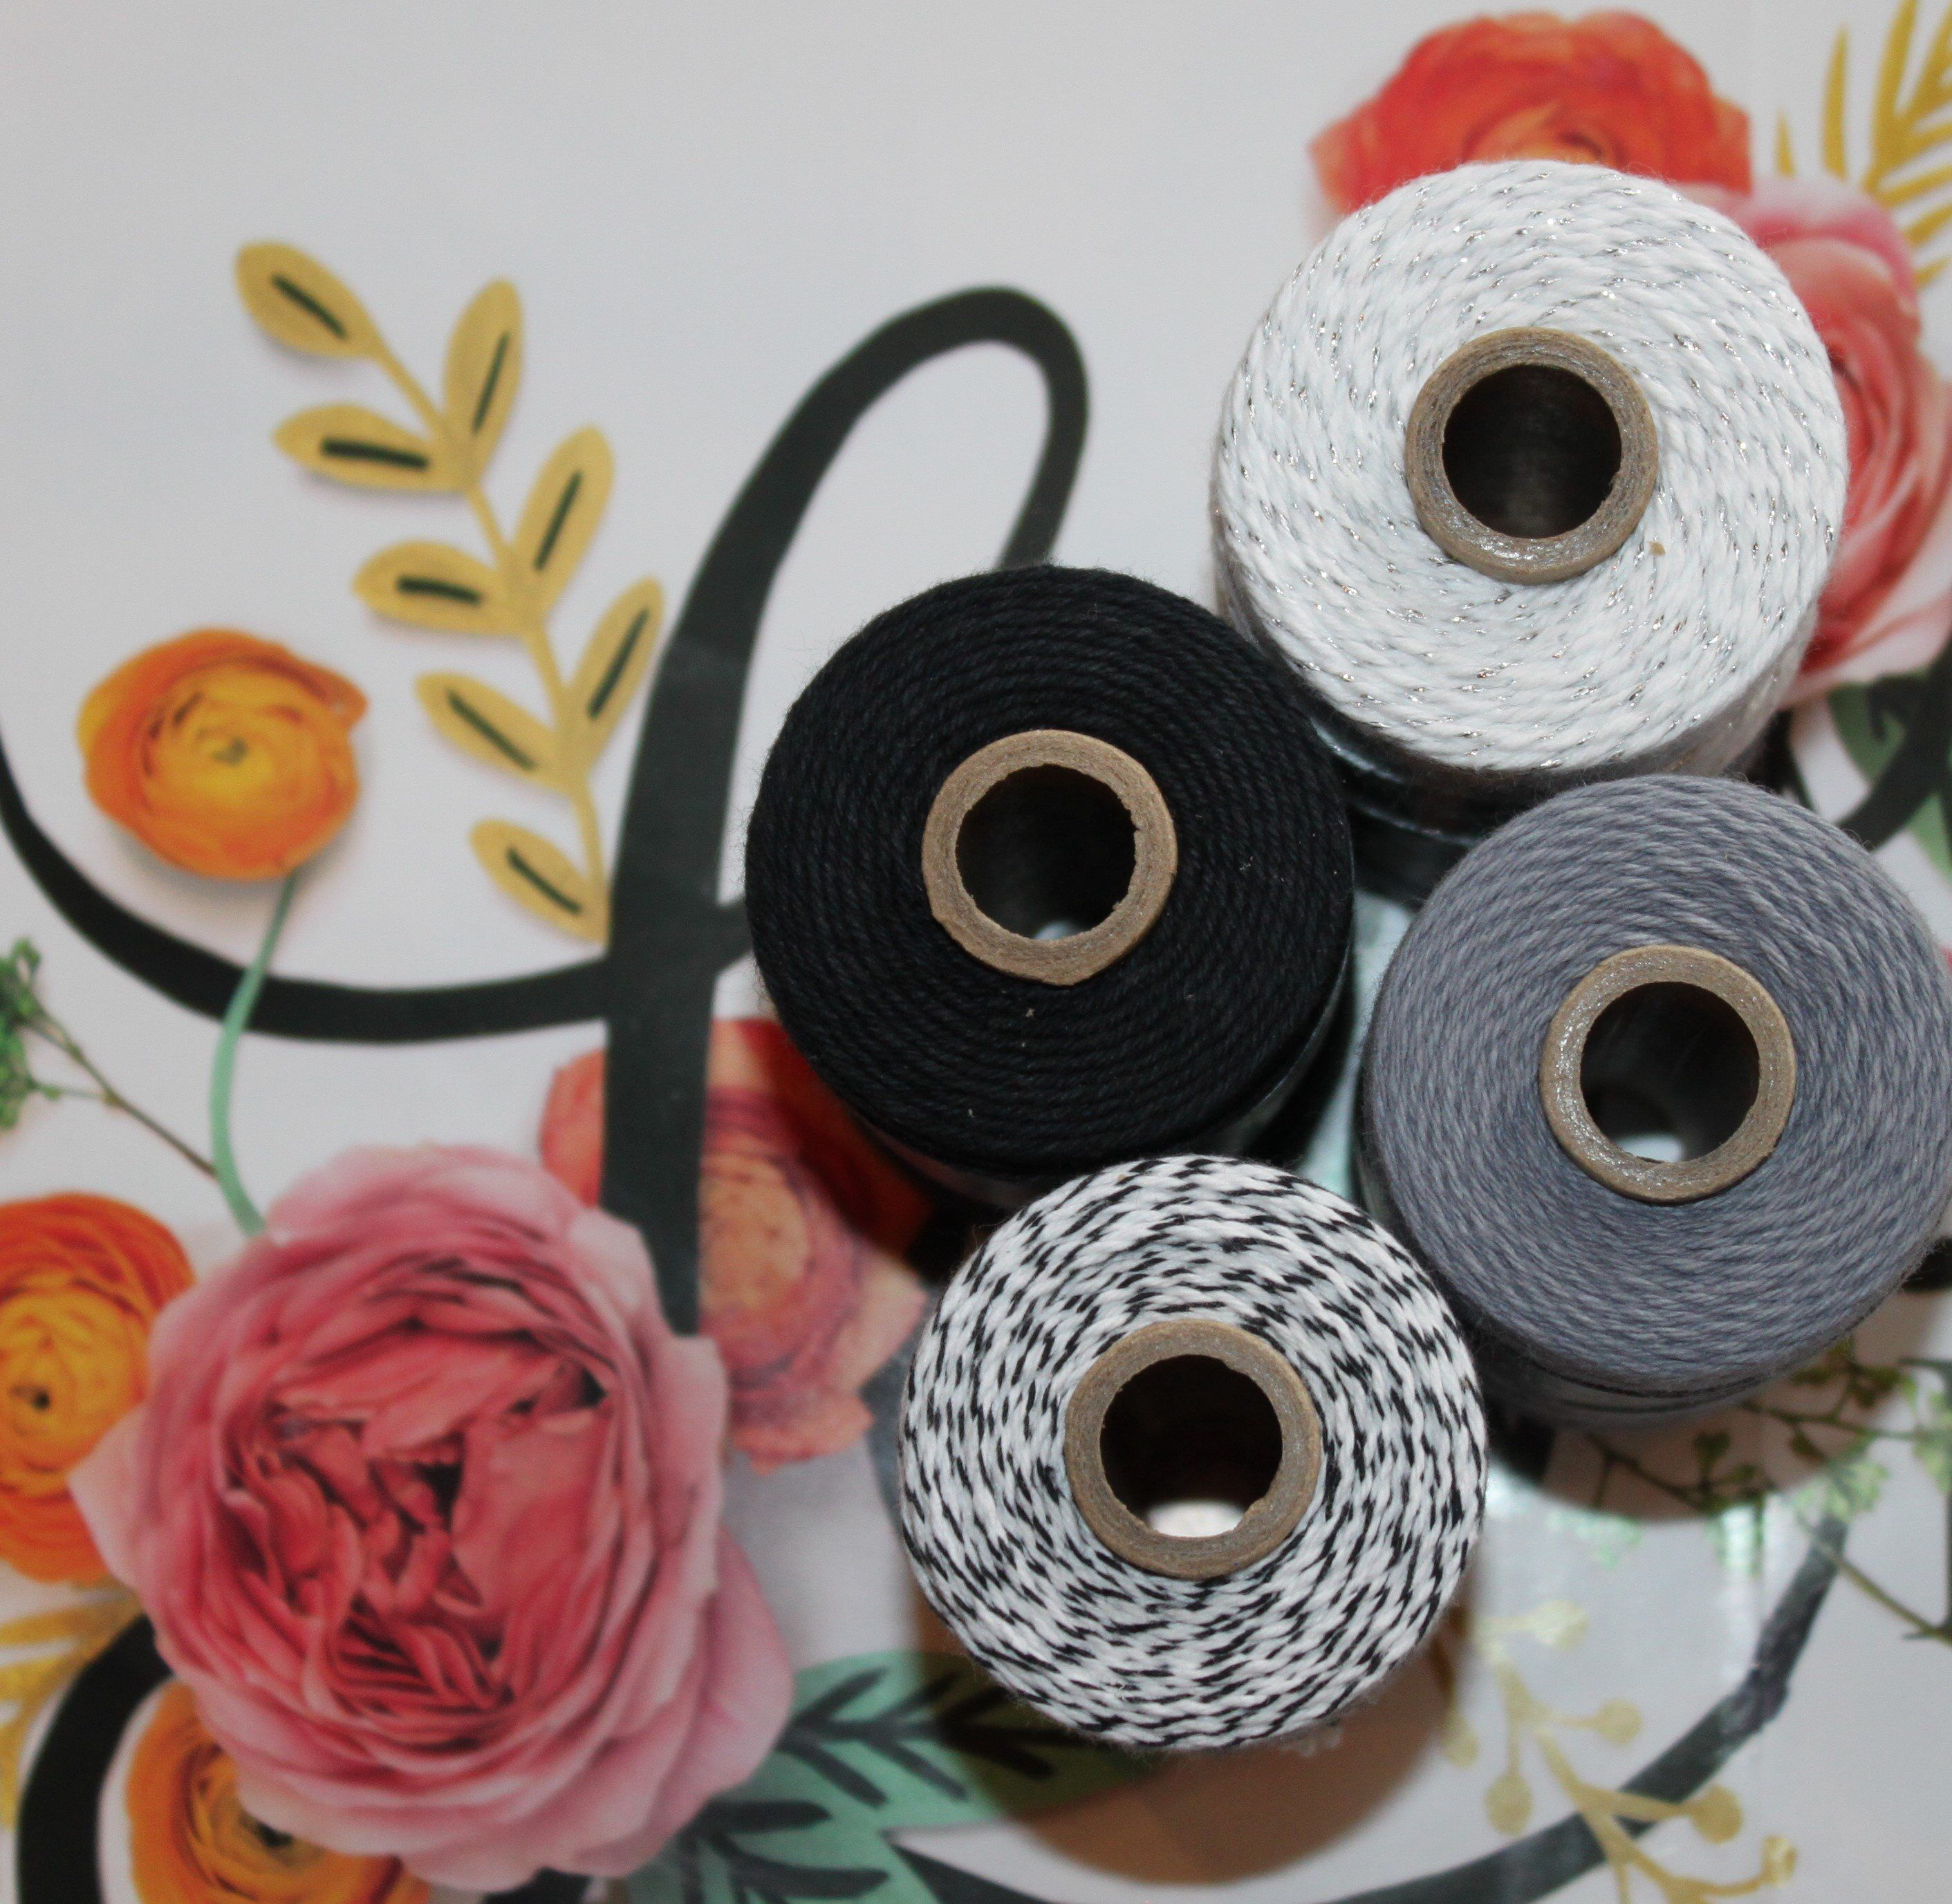 Black solid divine twine bakers twine gift wrap diy crafts belly